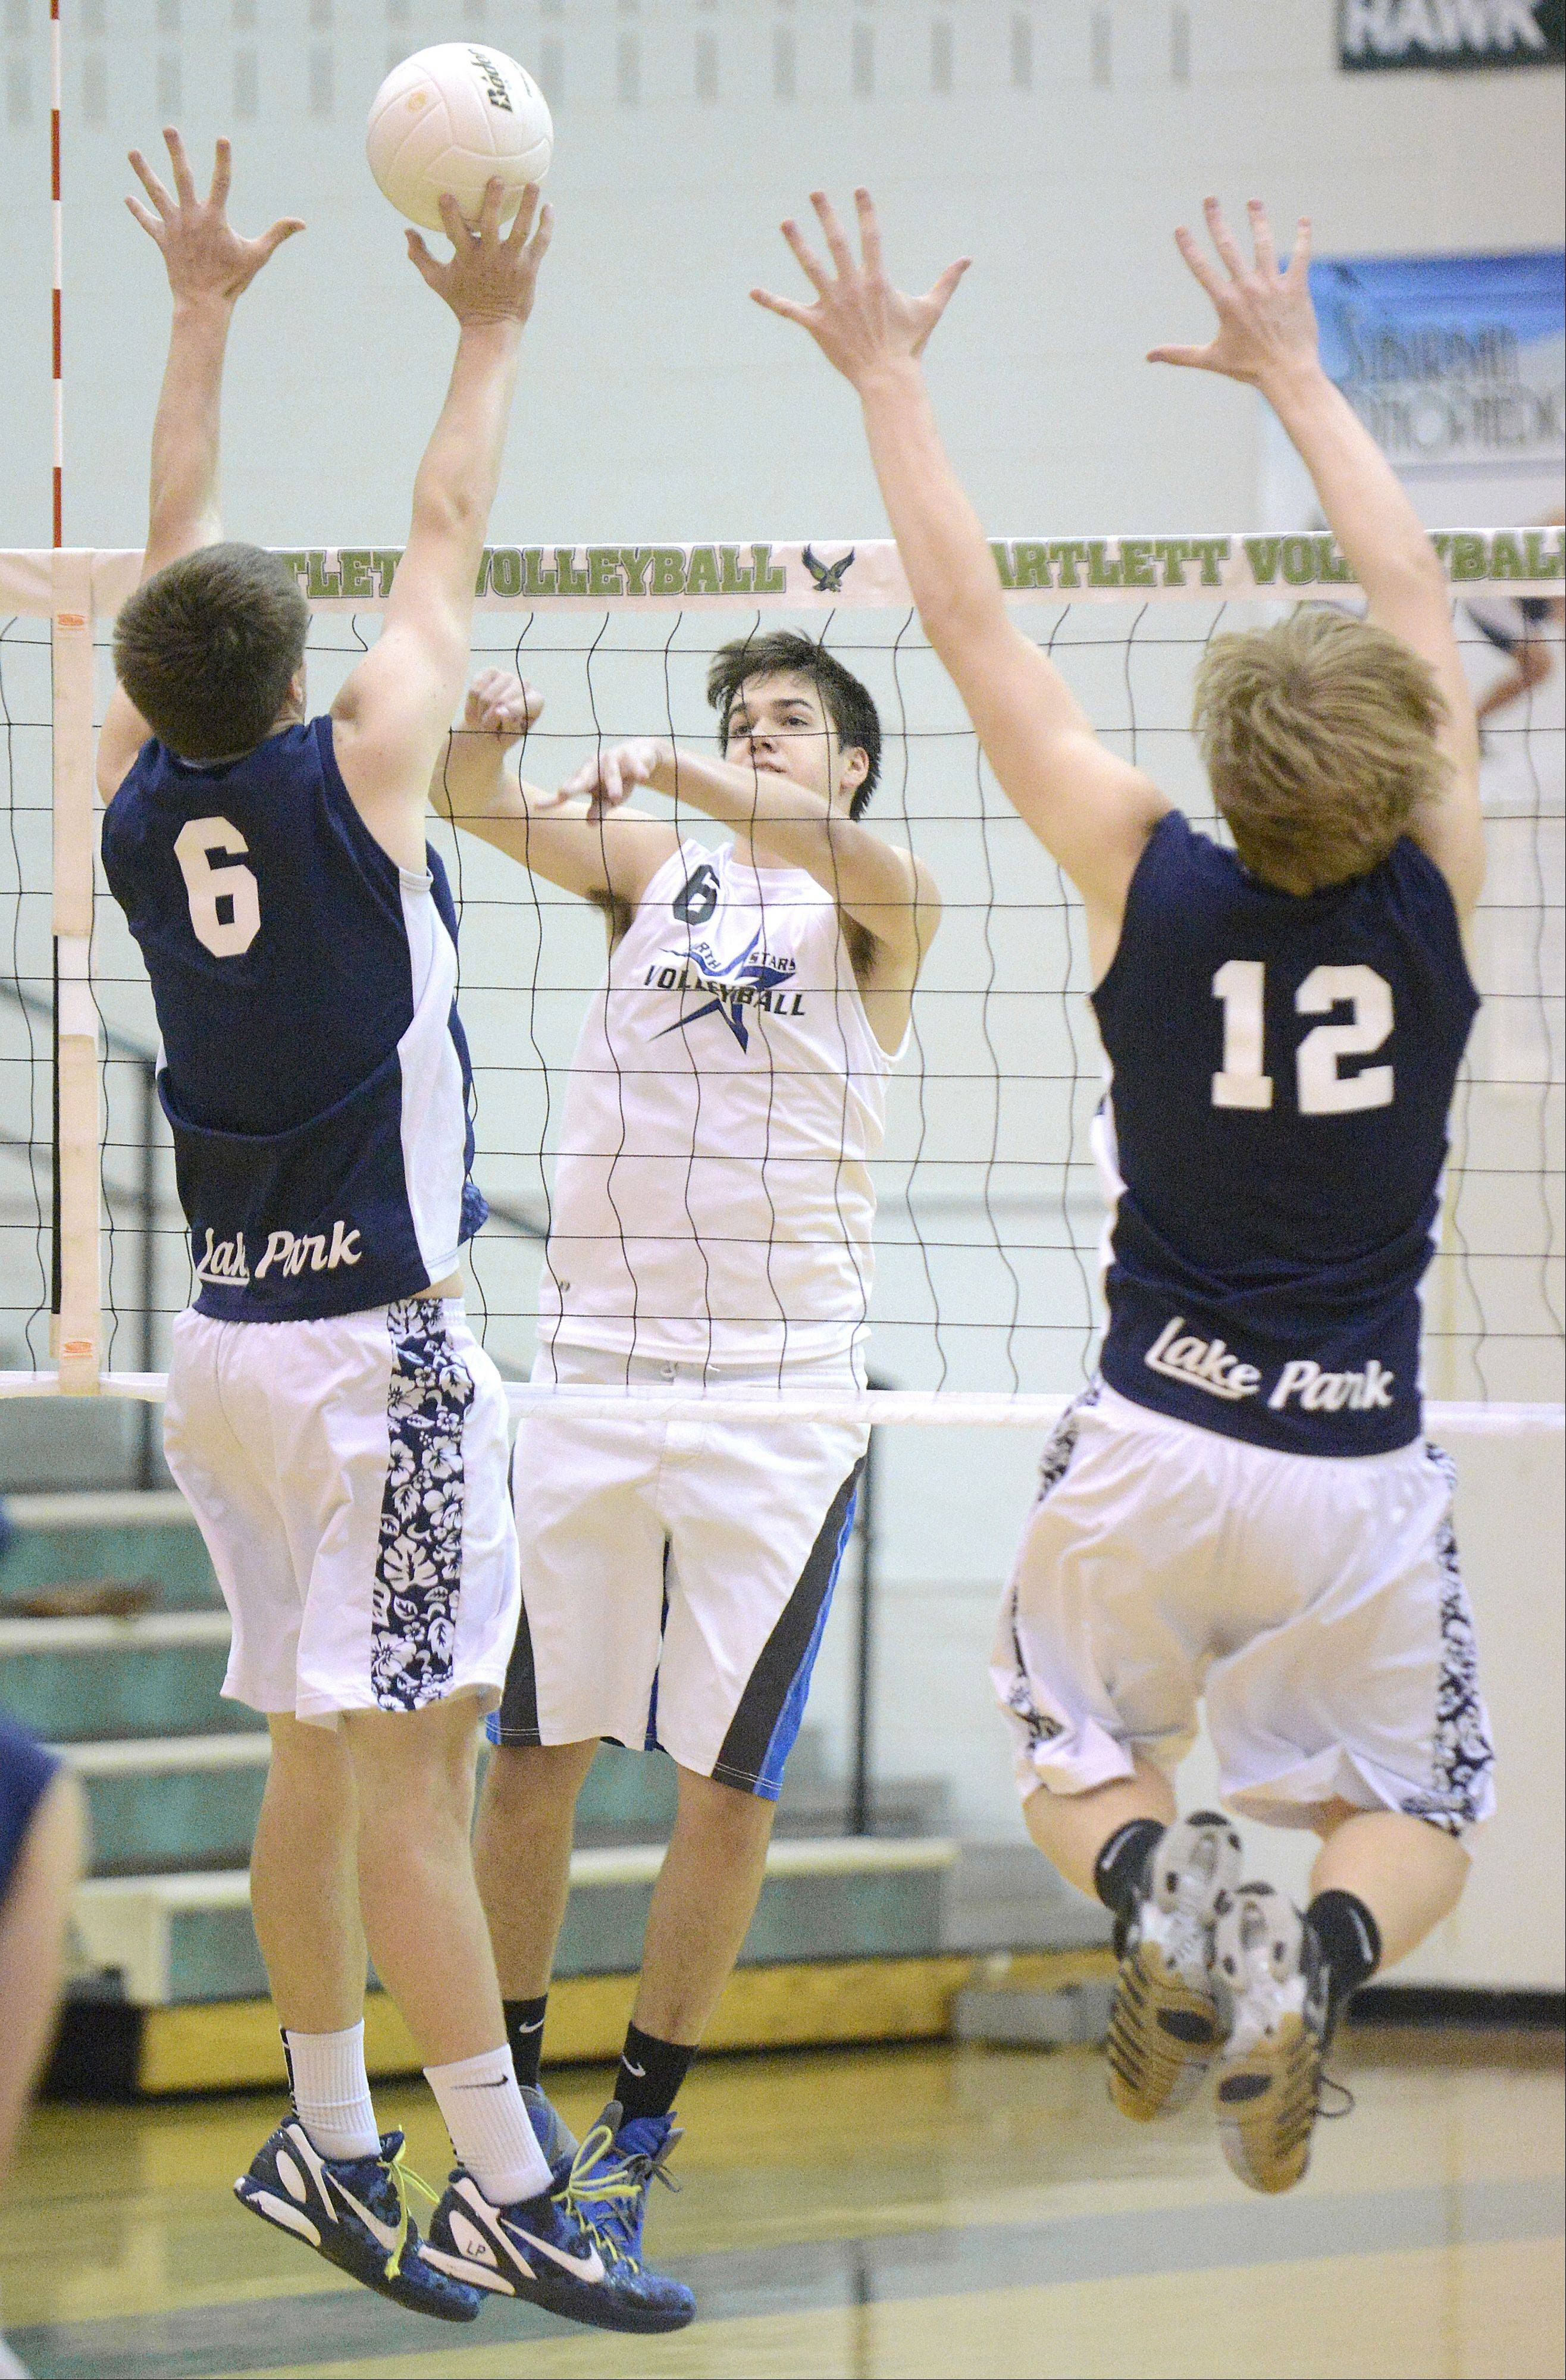 Lake Park's Dillon Hock and Derek Burke attempt a block on a spike by St. Charles North's Jack Harbaugh in the first game of sectional championship play in Bartlett on Tuesday.